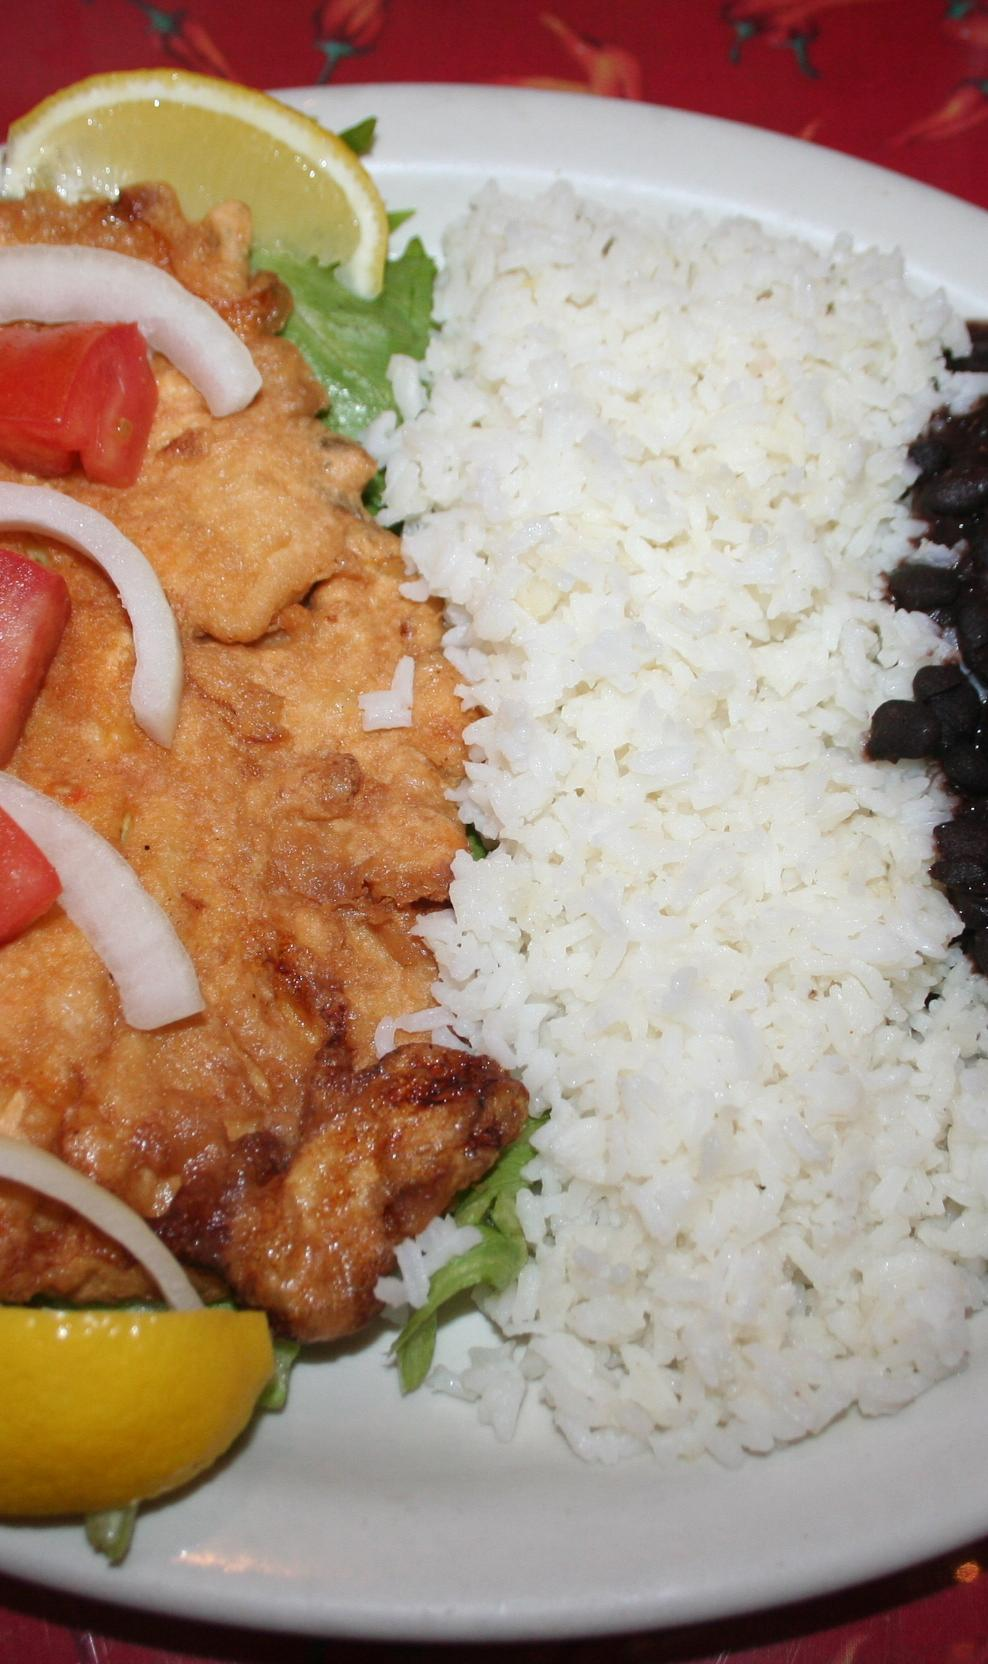 Benito's Authentic Mexican Food image 4